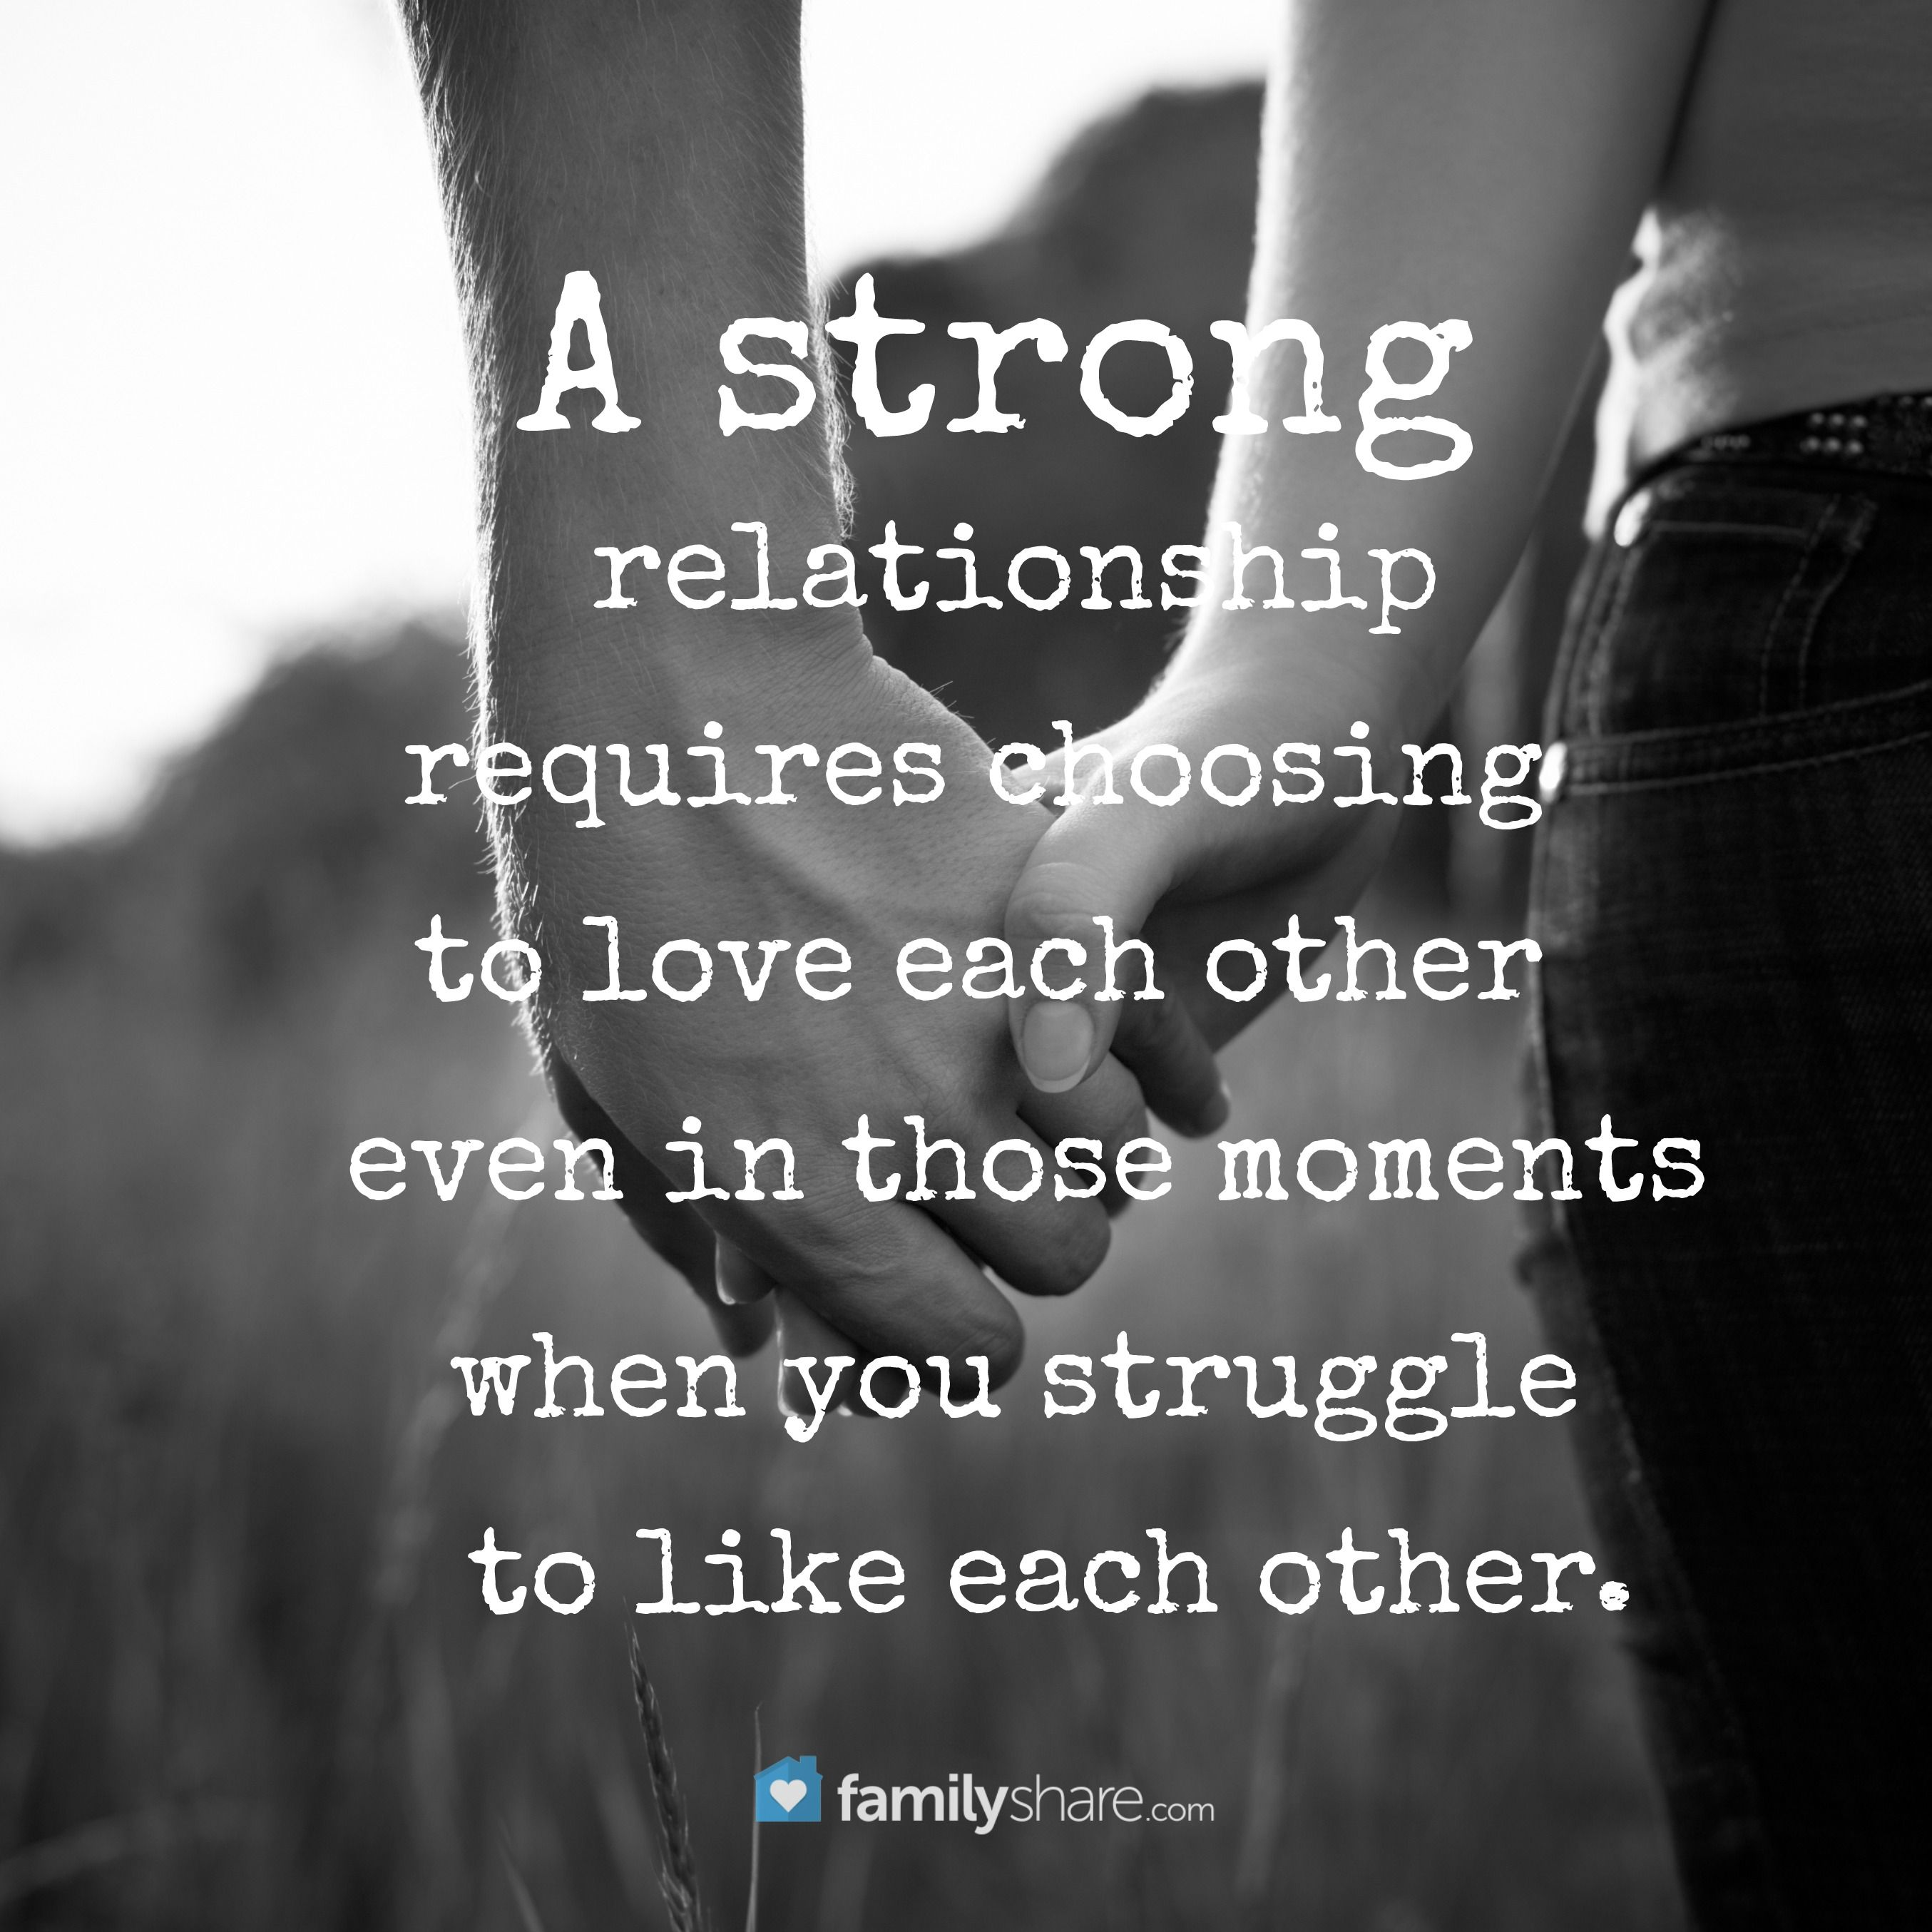 Quotes About Strong Relationship A Strong Relationship Requires Choosing To Love Each Other Even In